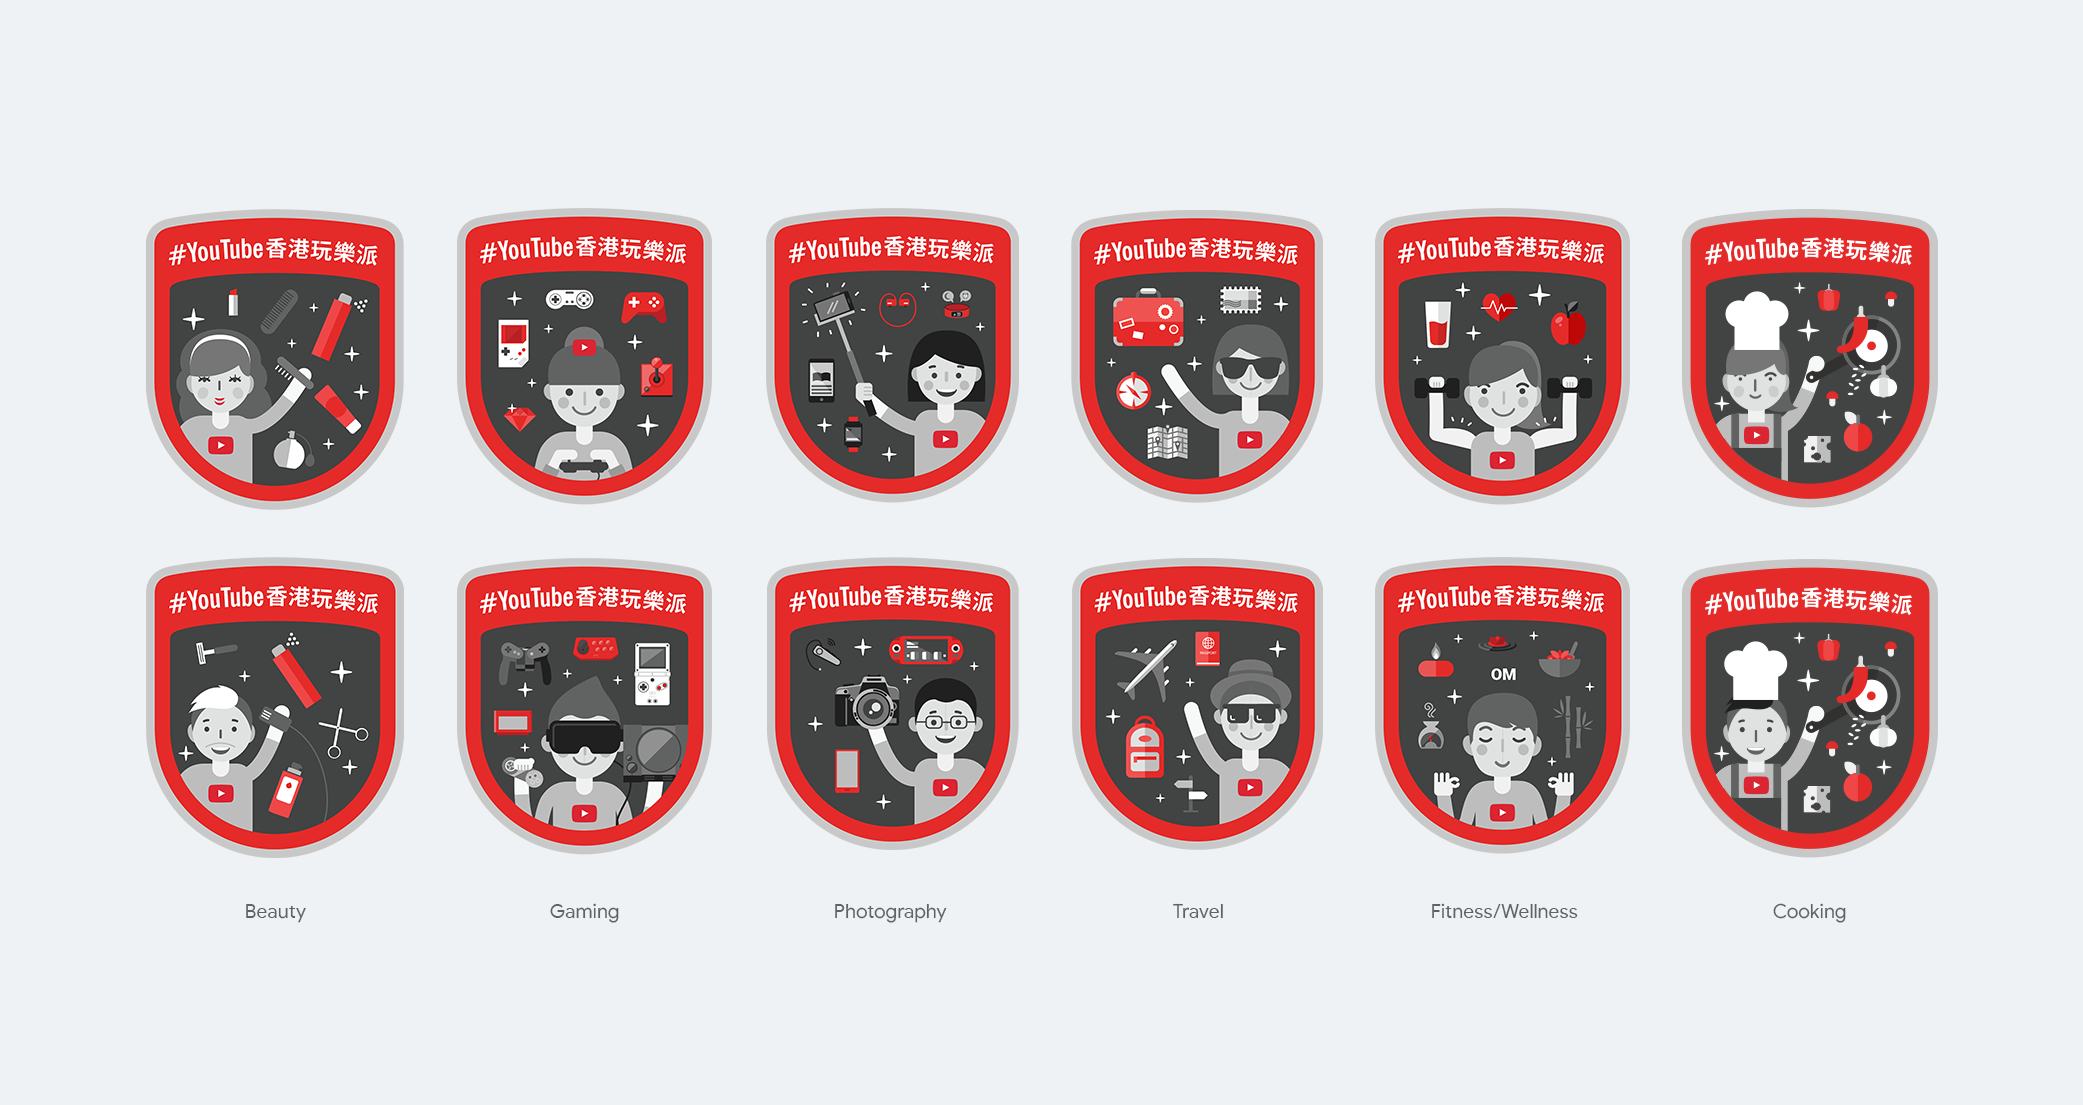 YouTube Fun Class stickers in 6 categories.